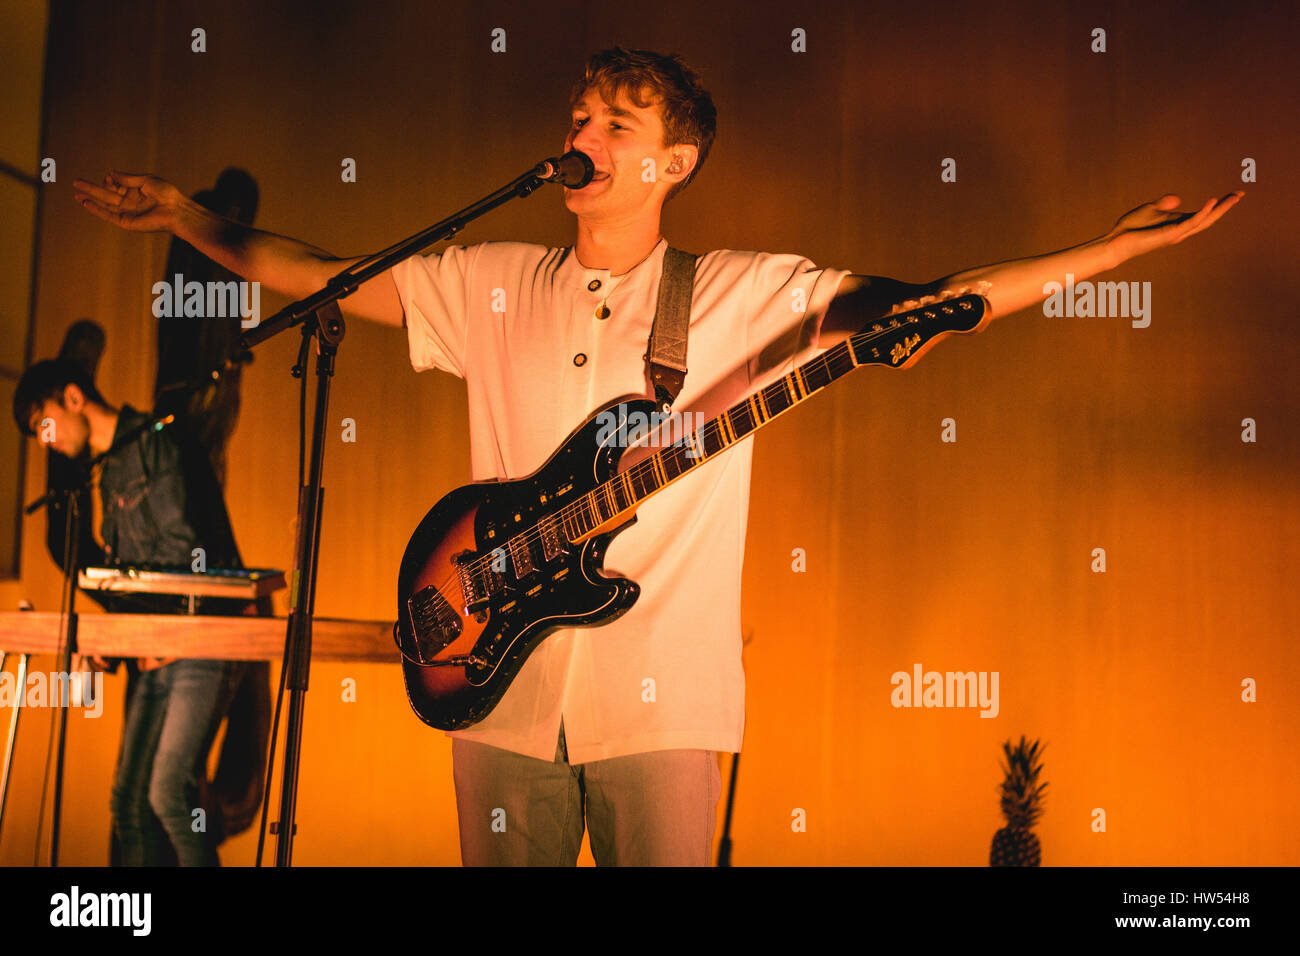 Glass Animals performing at London, Brixton 02 Academy - 16 March 2017 Stock Photo